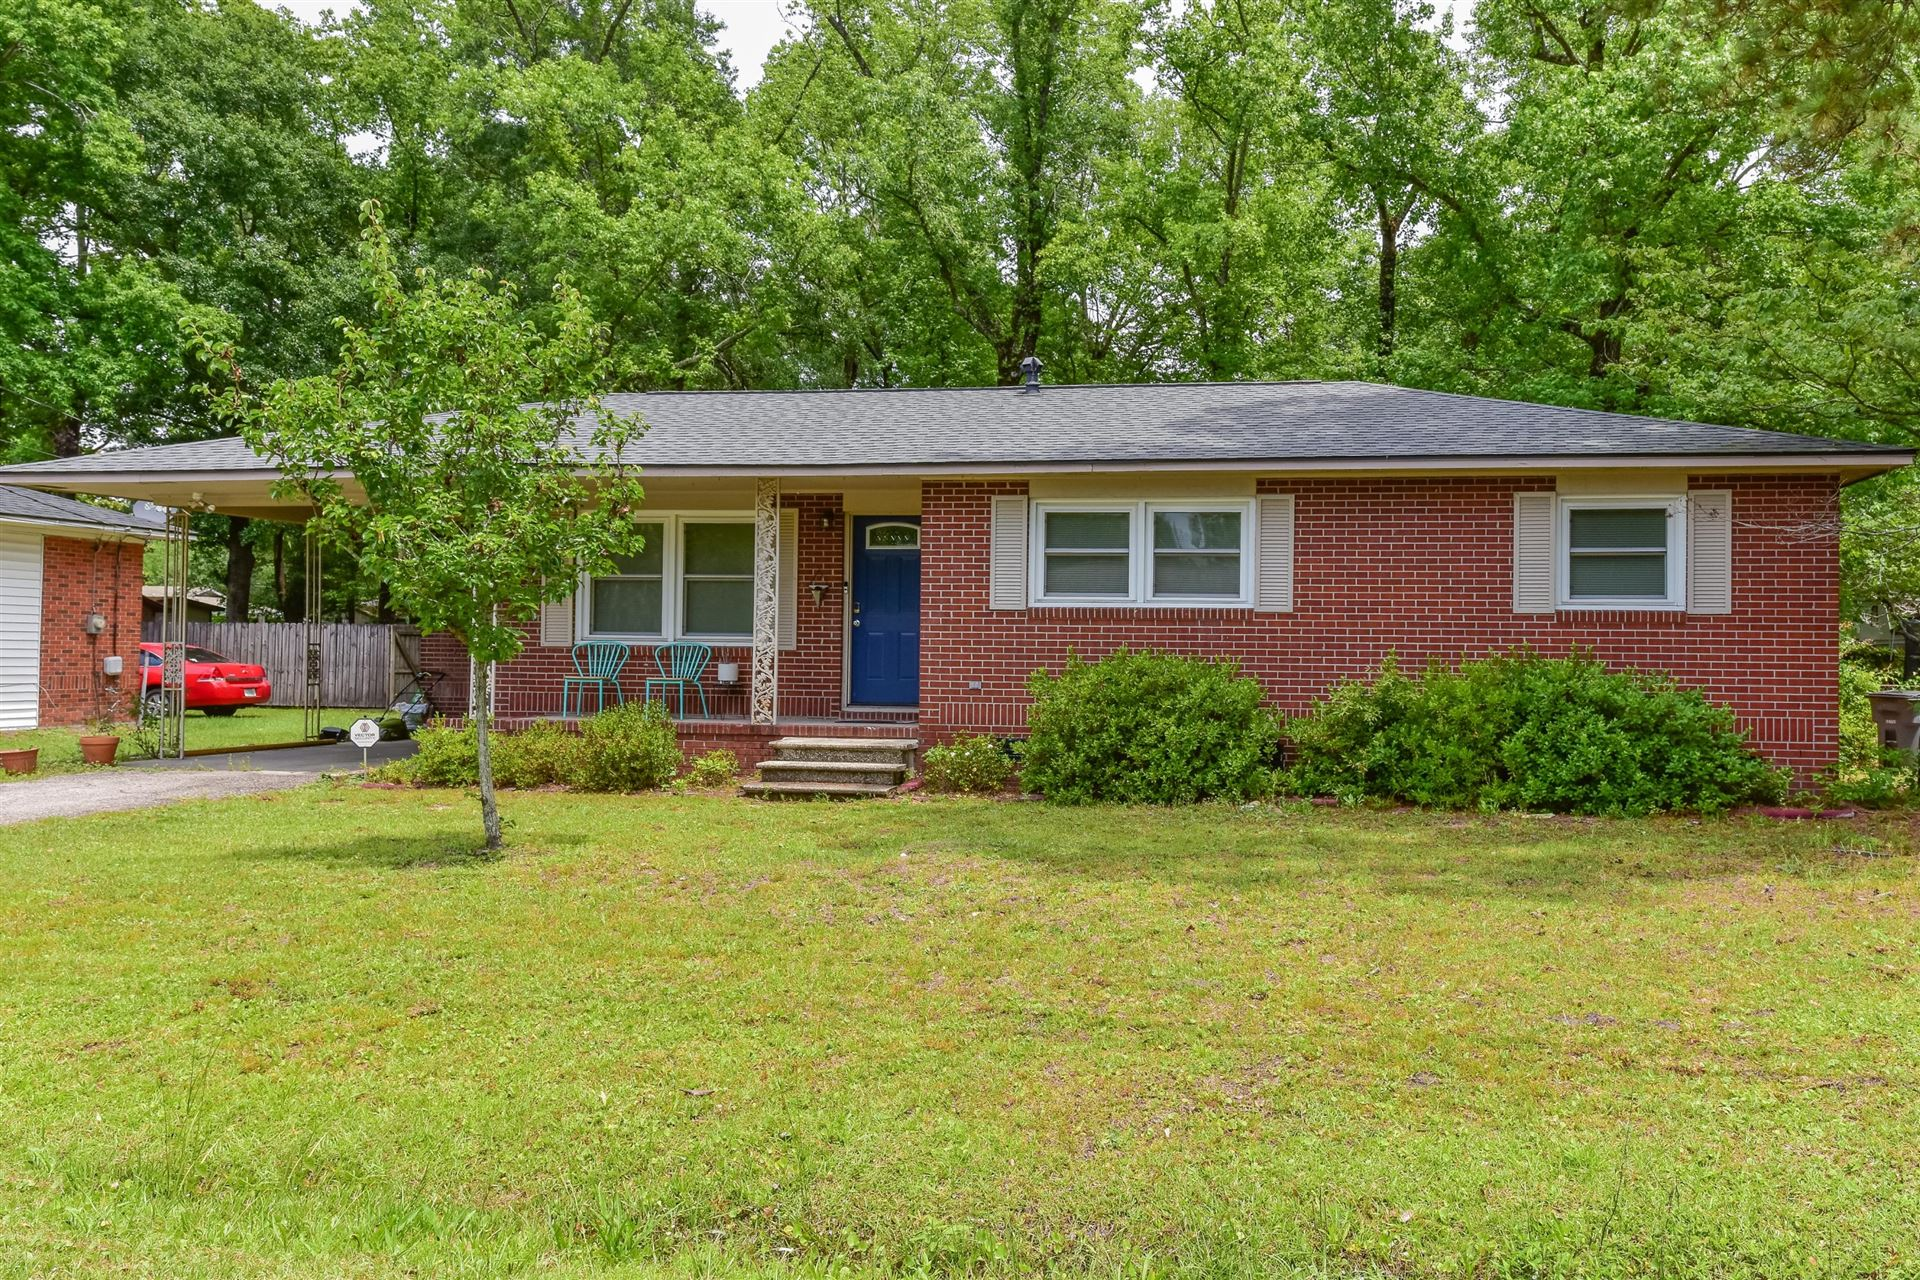 Photo of 4406 Bon Aire Boulevard, North Charleston, SC 29418 (MLS # 20014129)